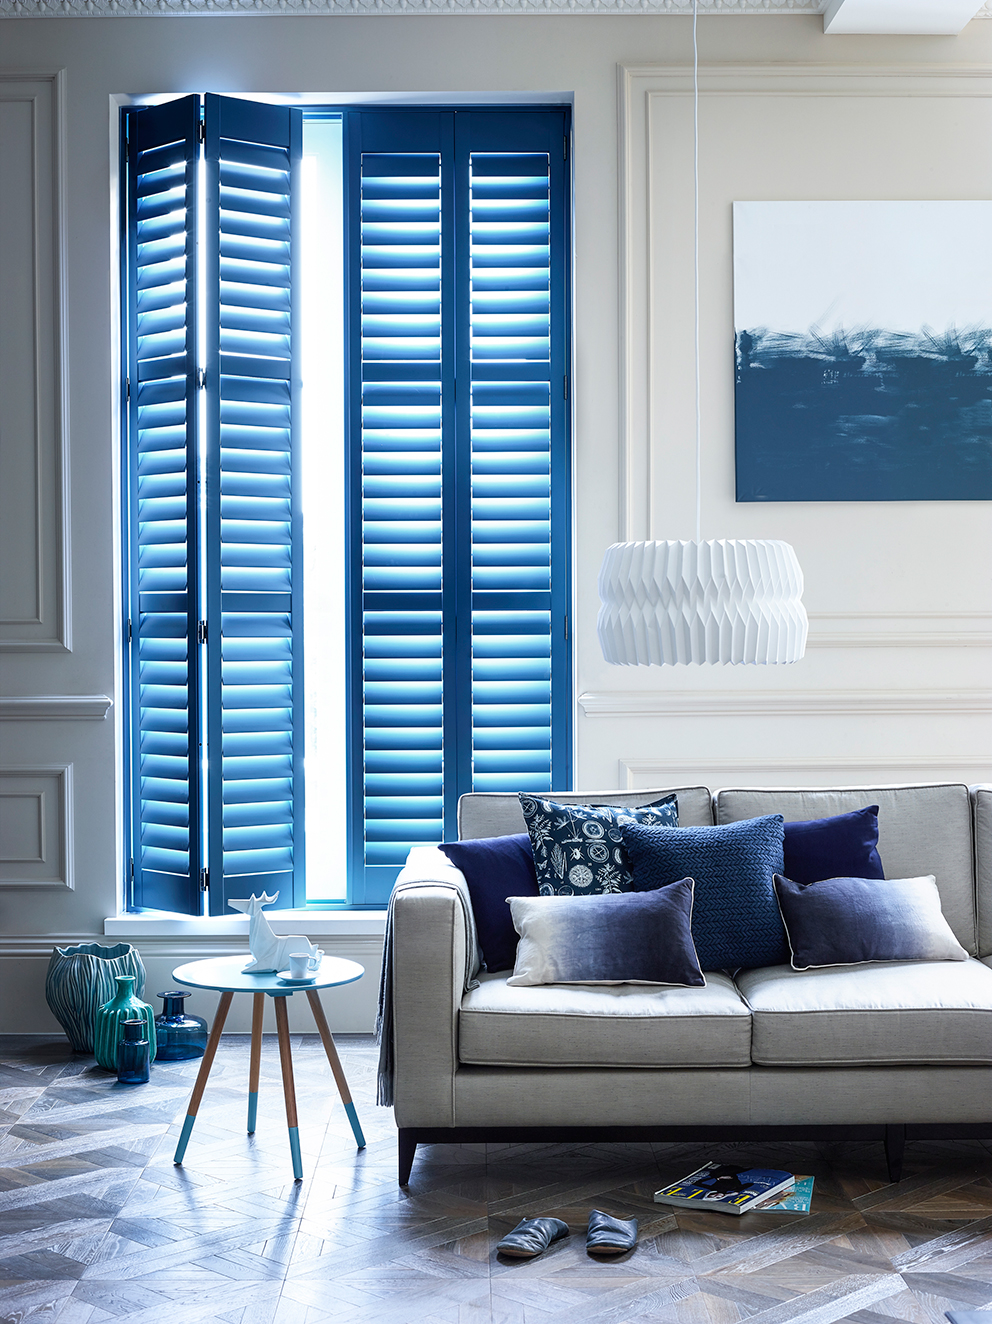 Shutterly Fabulous - French For Pineapple Blog - full lenght blue shutters in traditional room with wall moulidng and parquet floor with modern sofa